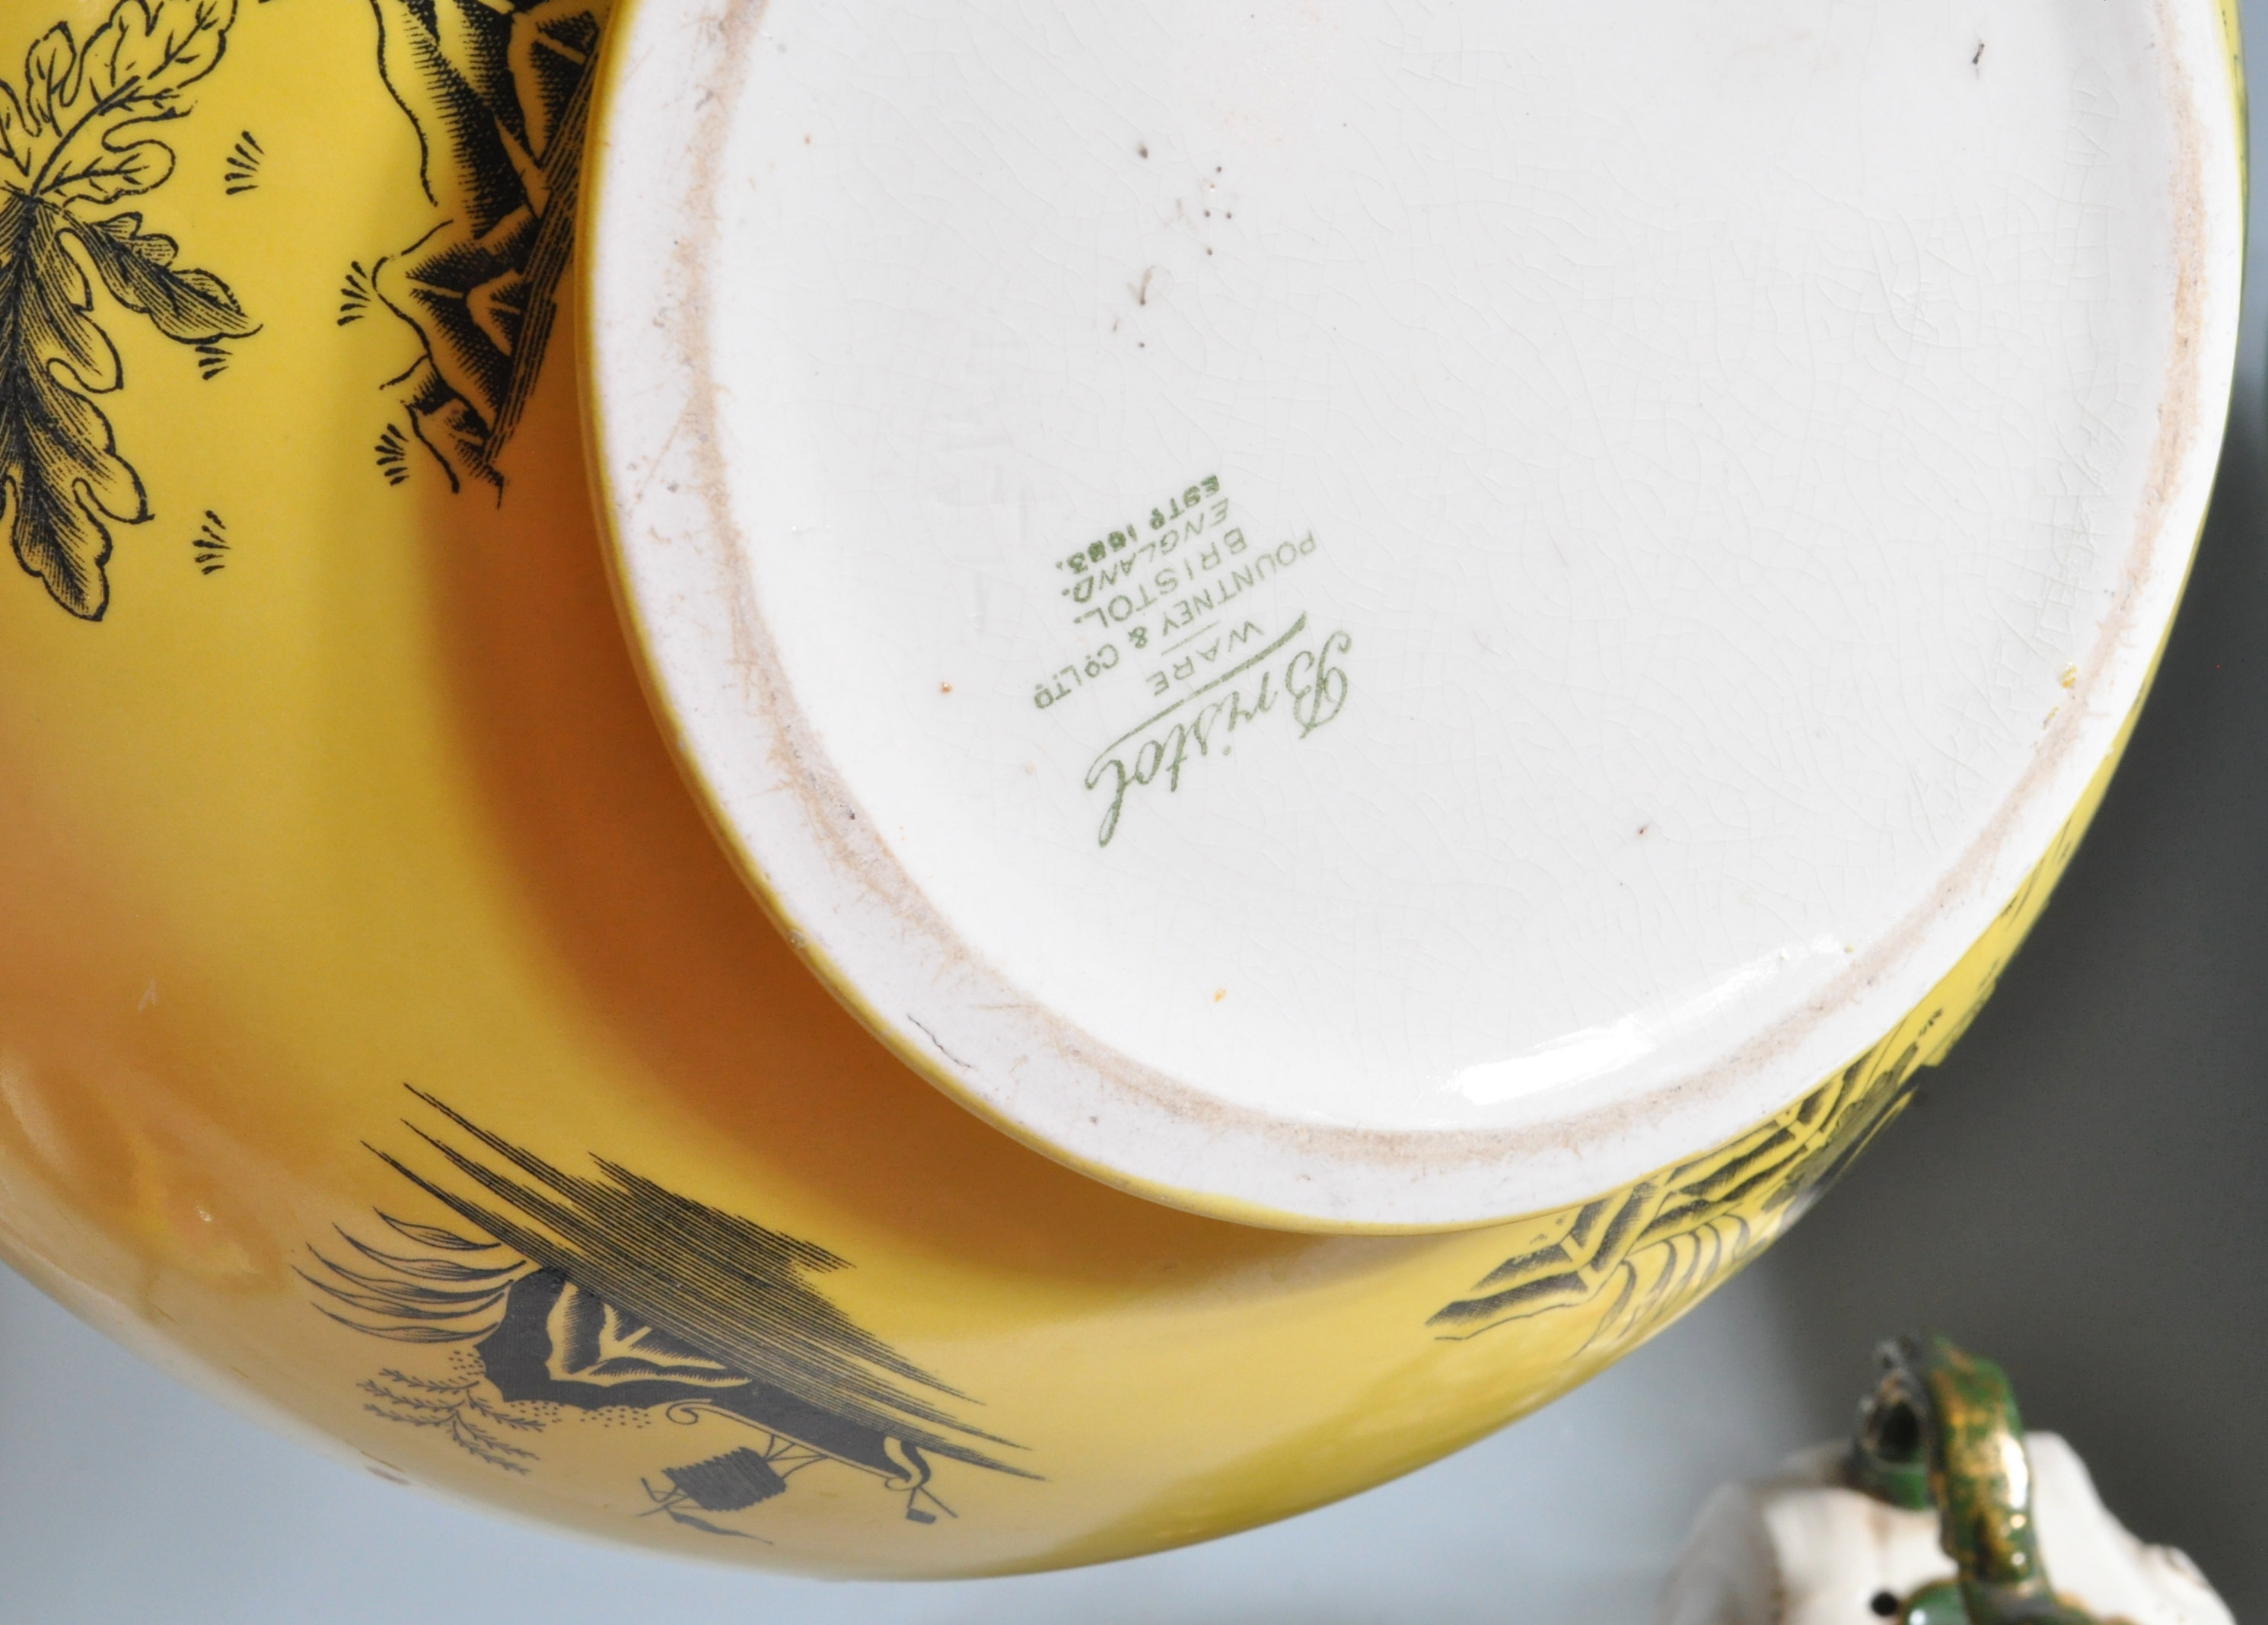 COLLECTION OF VINTAGE 20TH CENTURY CERAMICS - Image 5 of 10